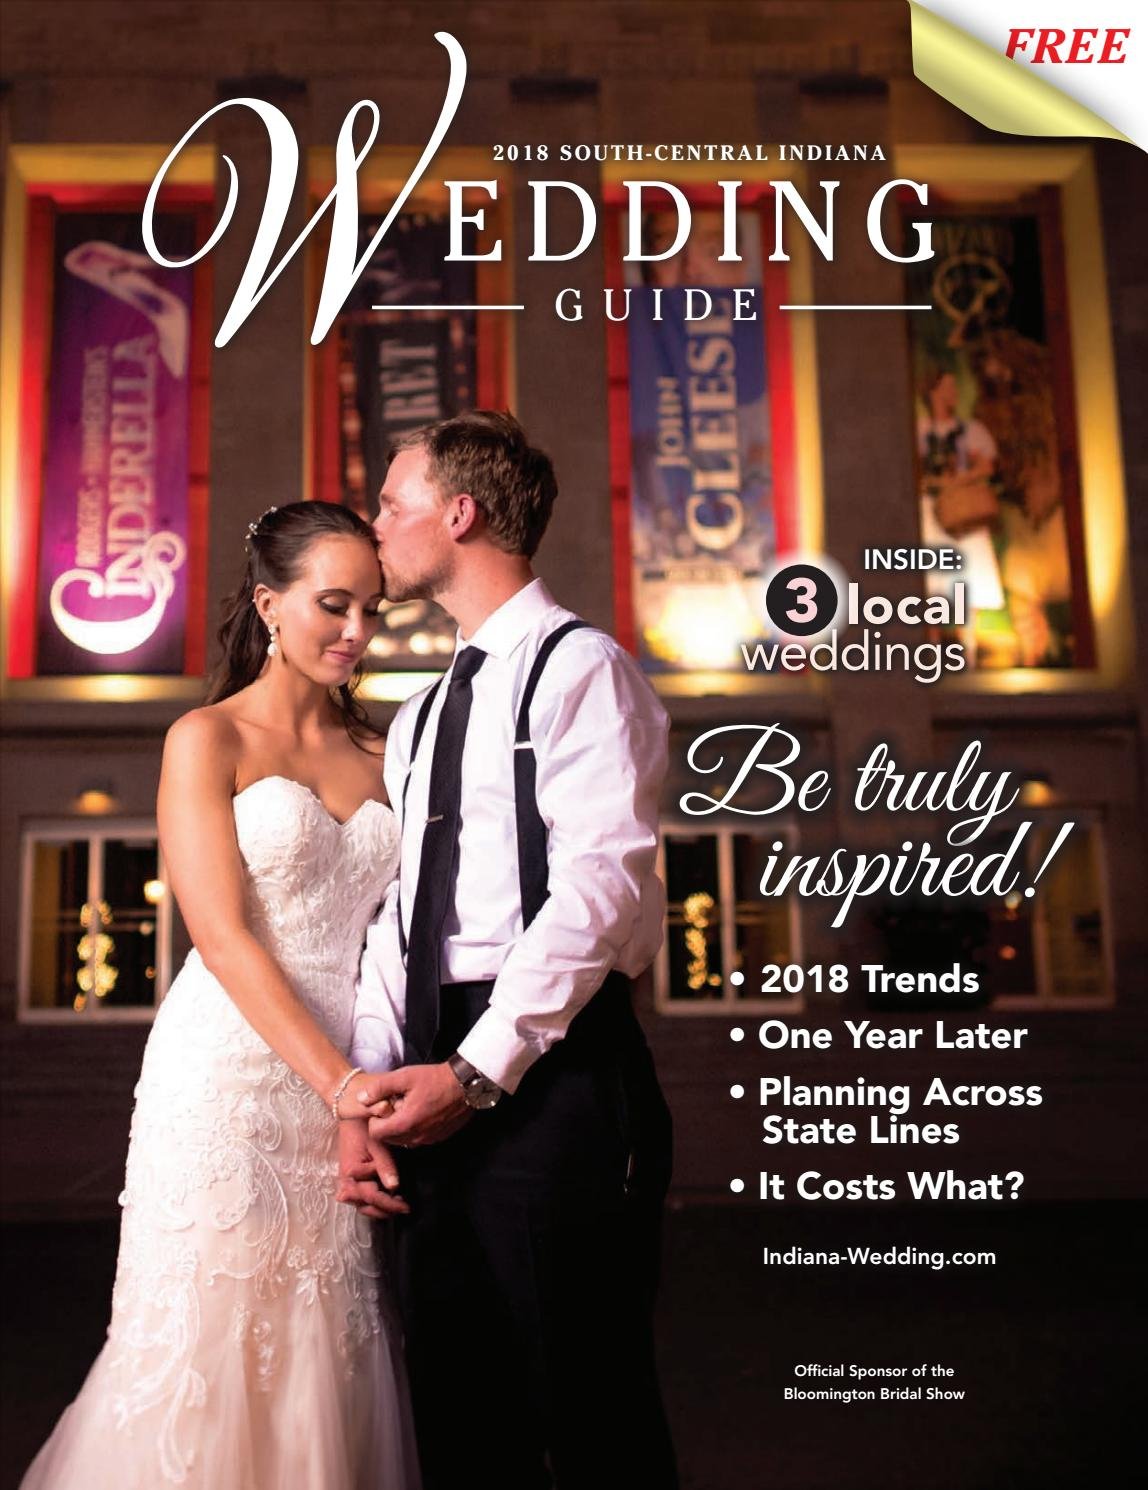 86ba49fed5e 2018 South-Central Indiana Wedding Guide by The Herald-Times by Hoosier  Times Inc. - issuu